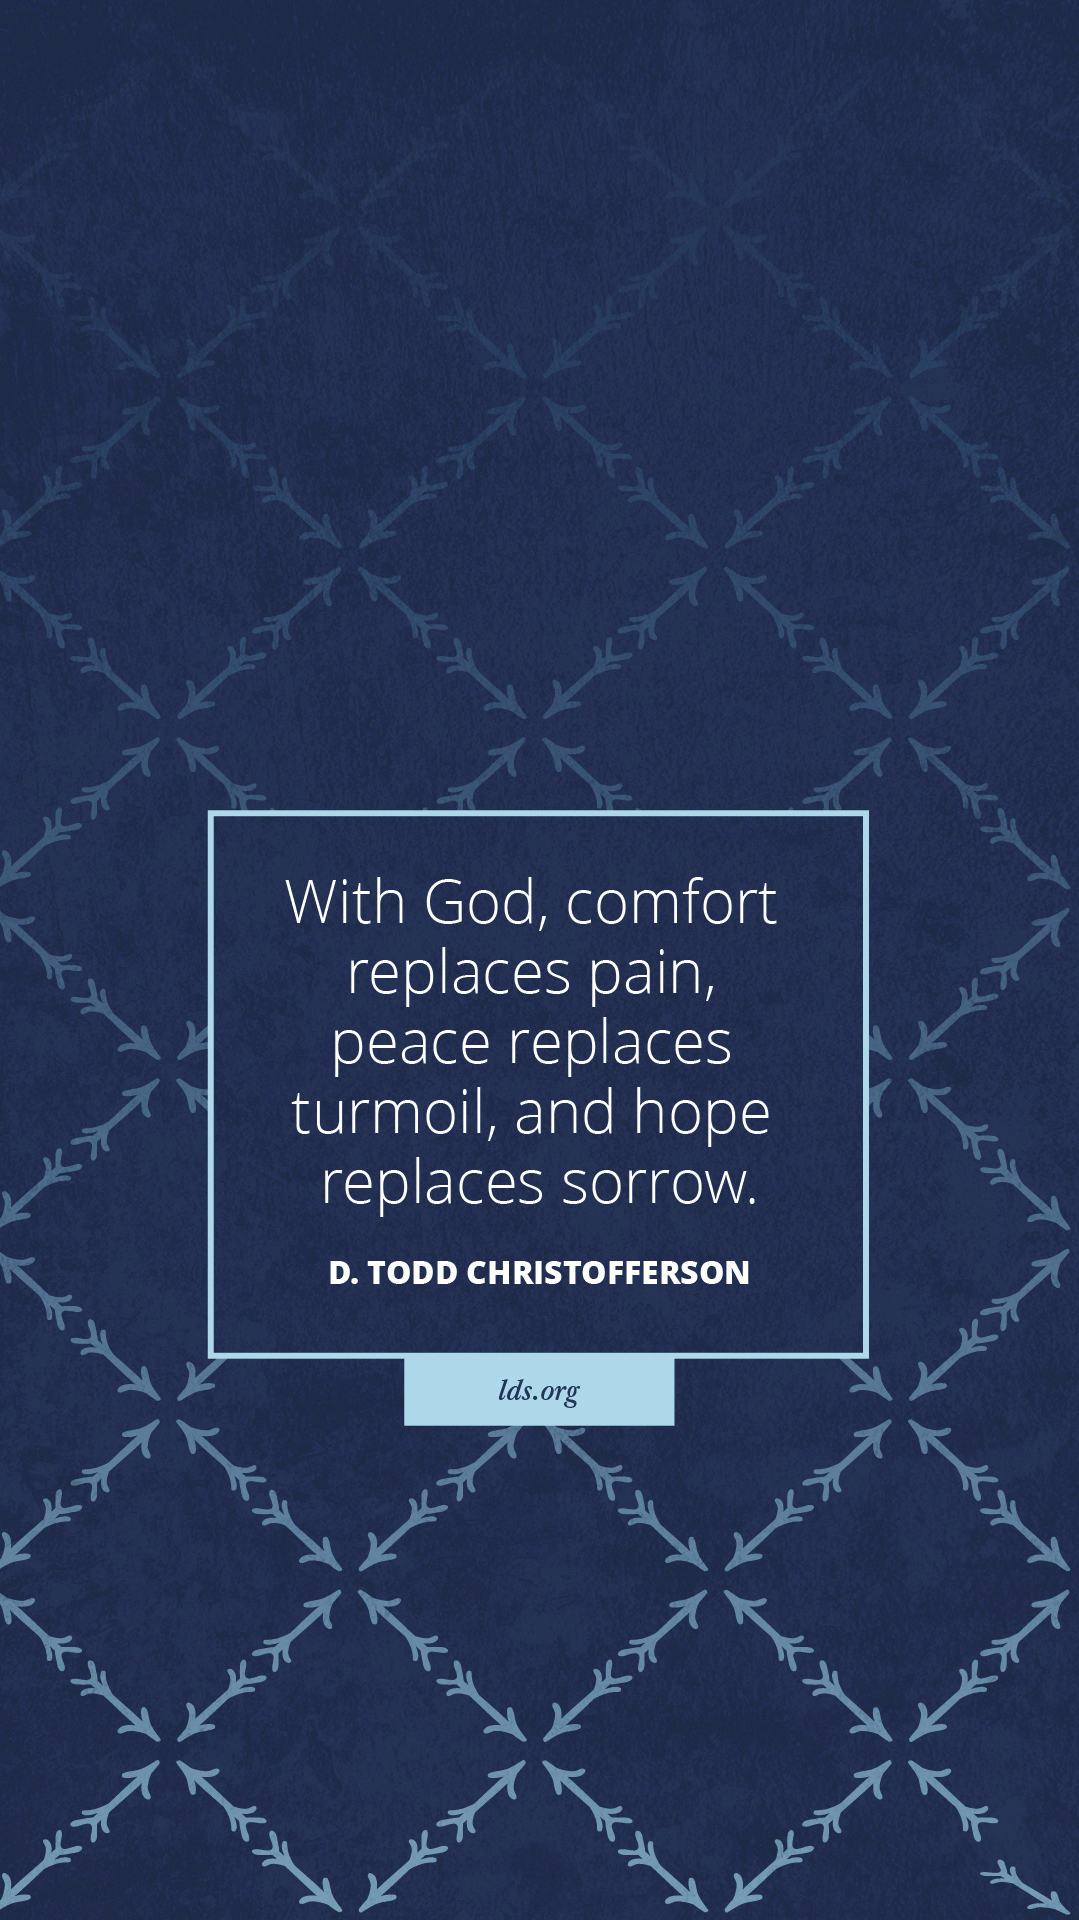 """""""With God, comfort replaces pain, peace replaces turmoil, and hope replaces sorrow.""""—D. Todd Christofferson, """"Firm and Steadfast in the Faith of Christ"""""""